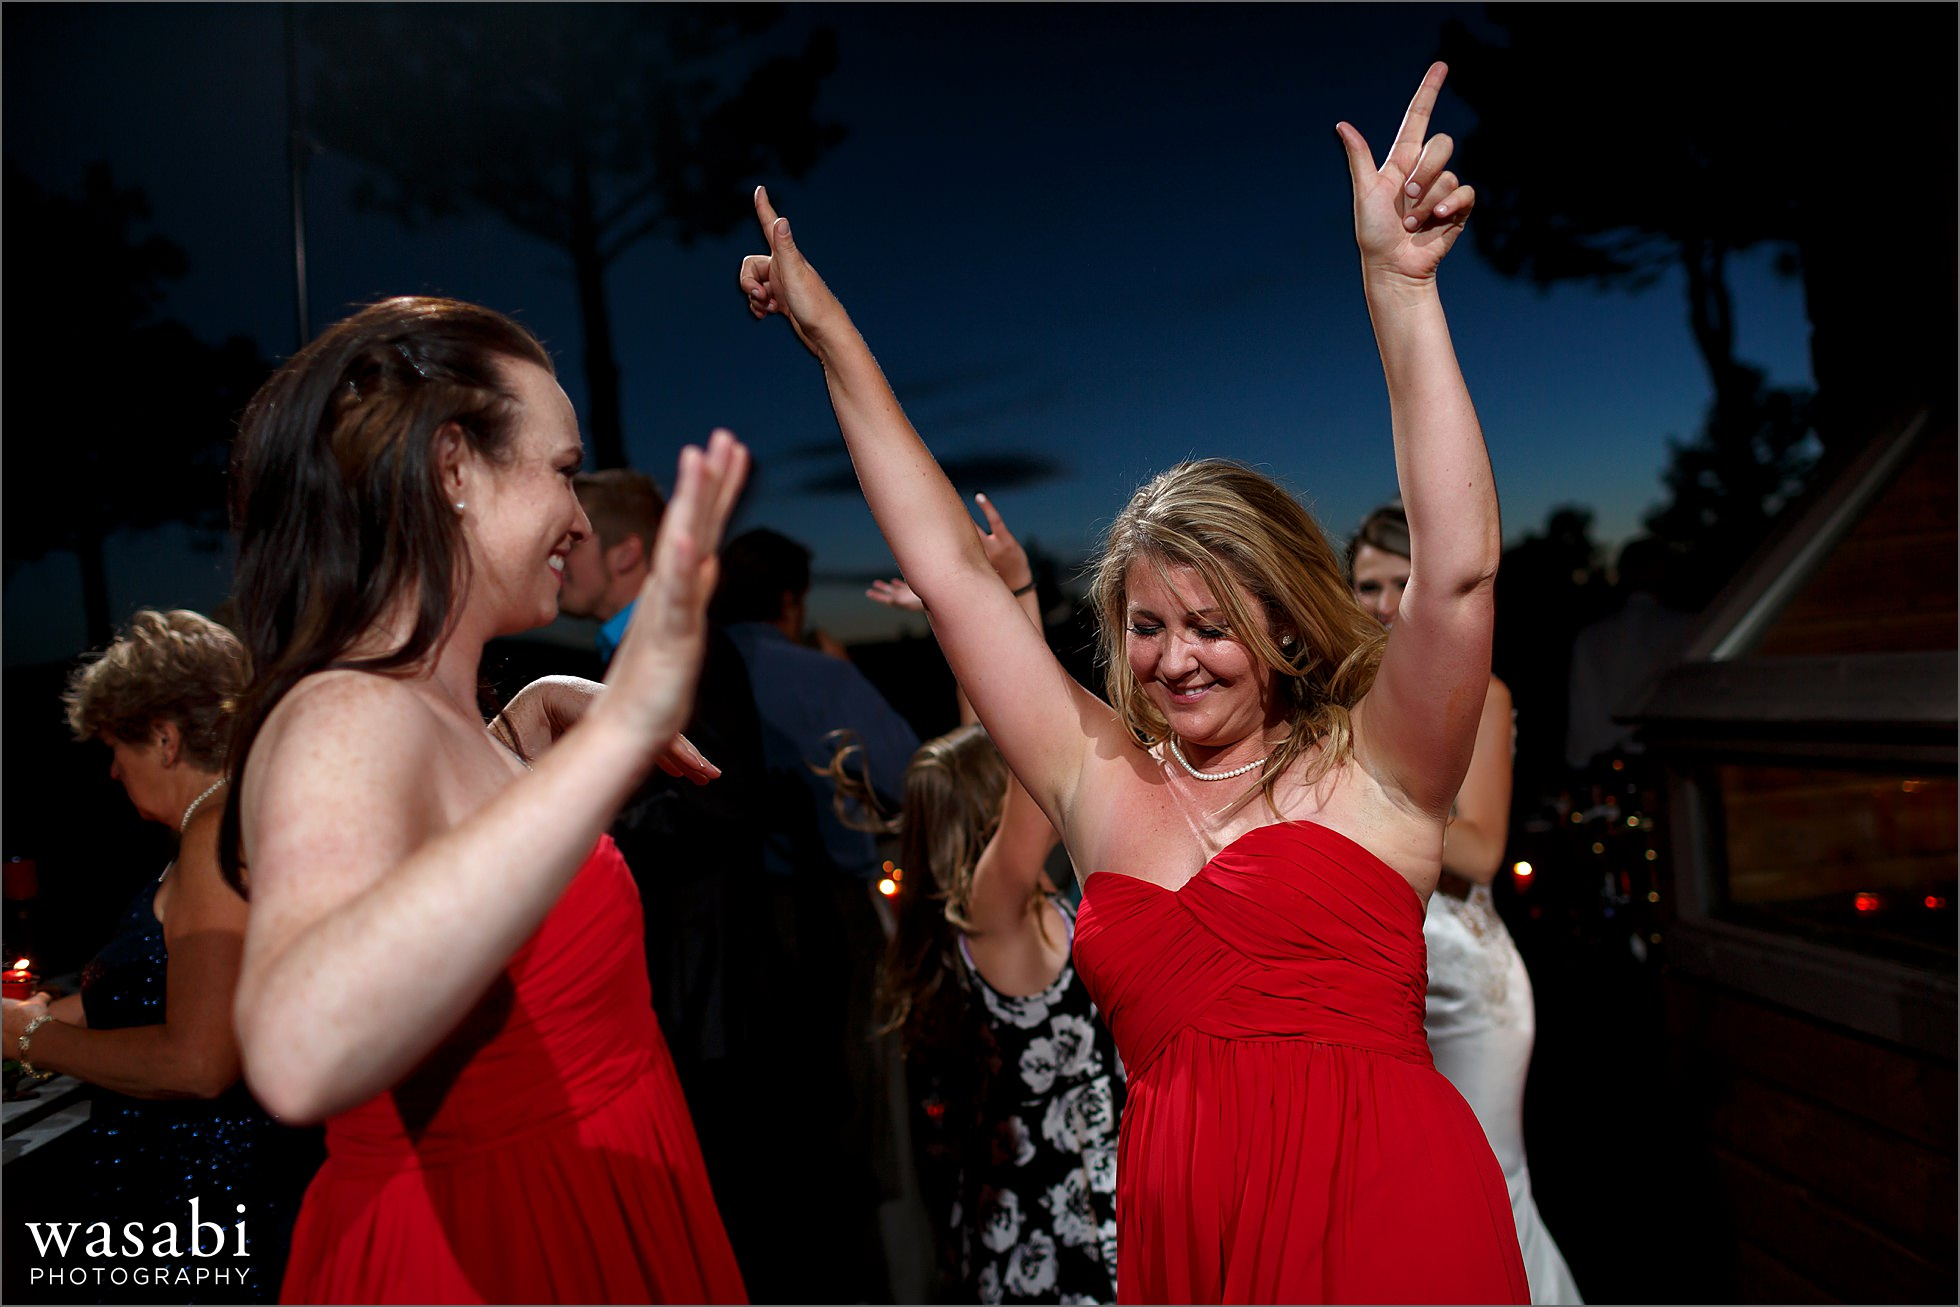 outdoor dancing photos at dusk during wedding reception at a private estate on Lookout Mountain in Golden Colorado